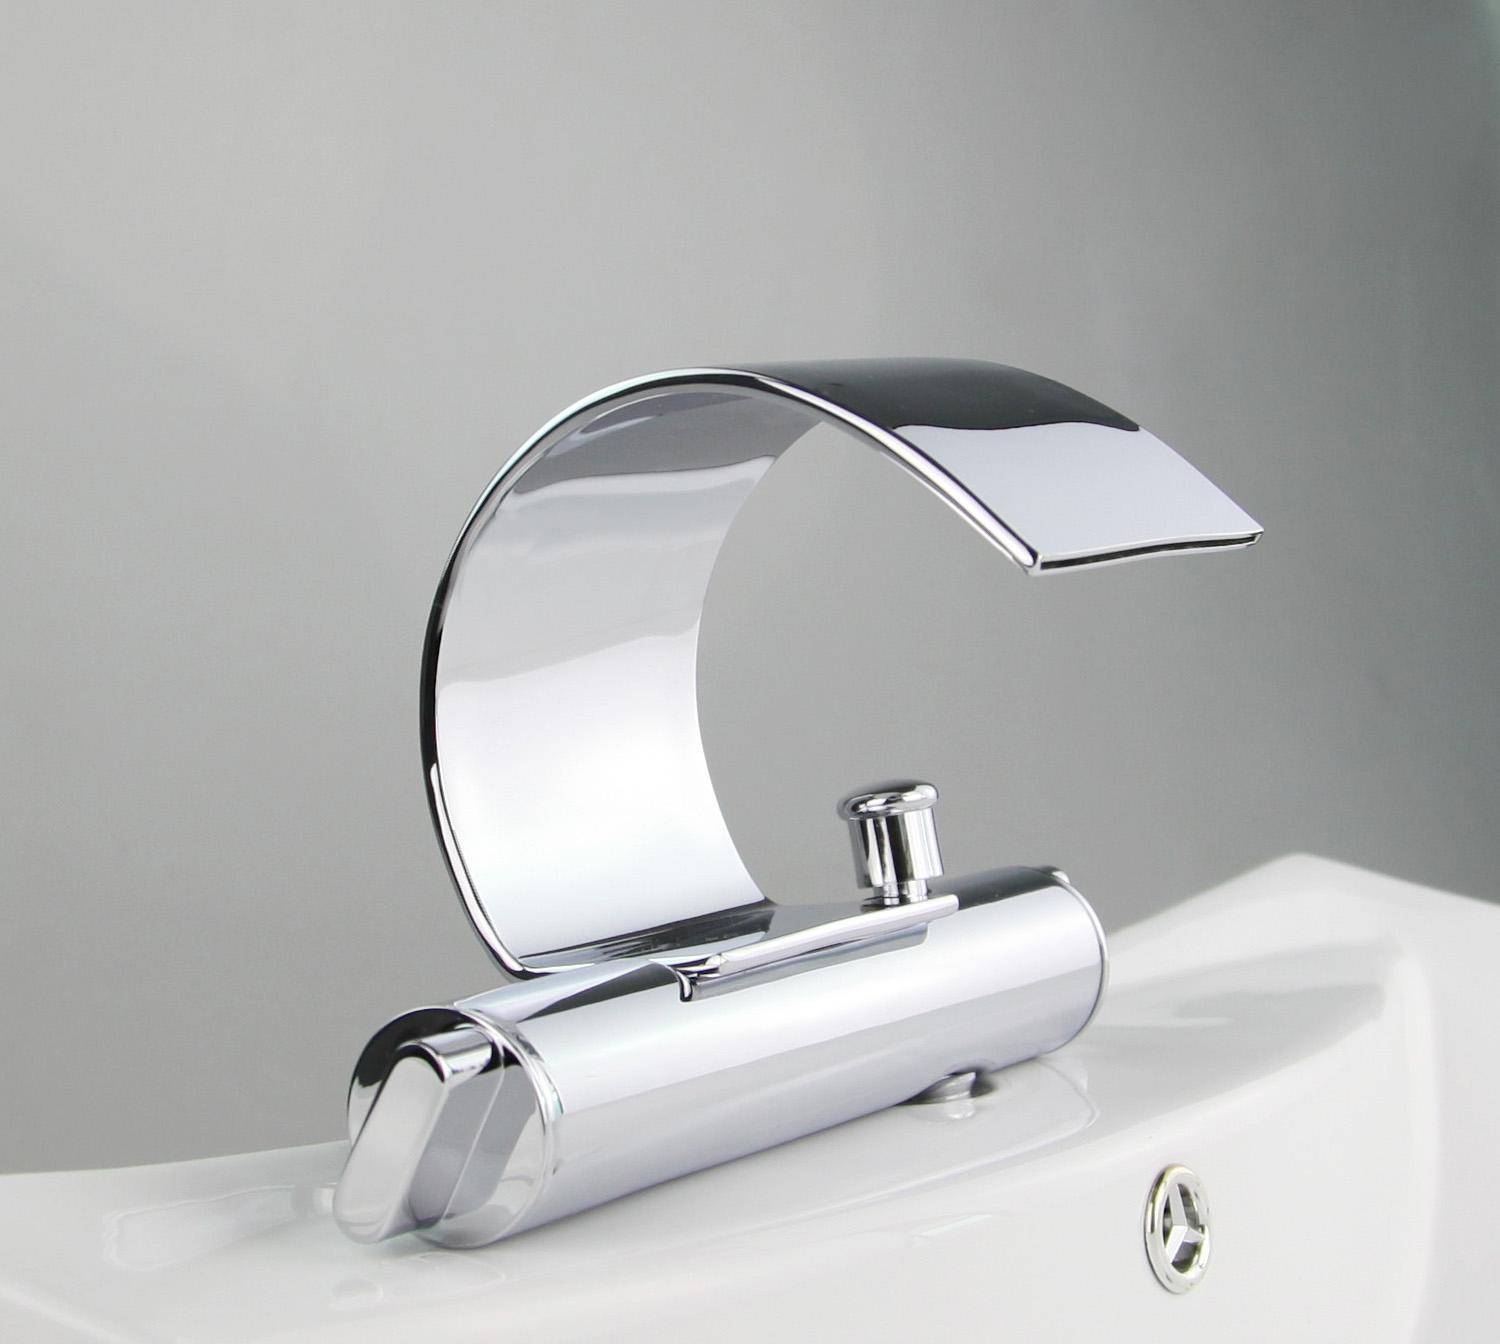 bathroom kohler faucet roman chrome combo moen handle tub faucets kitchen shower sink parts lavatory and pfister bathtub